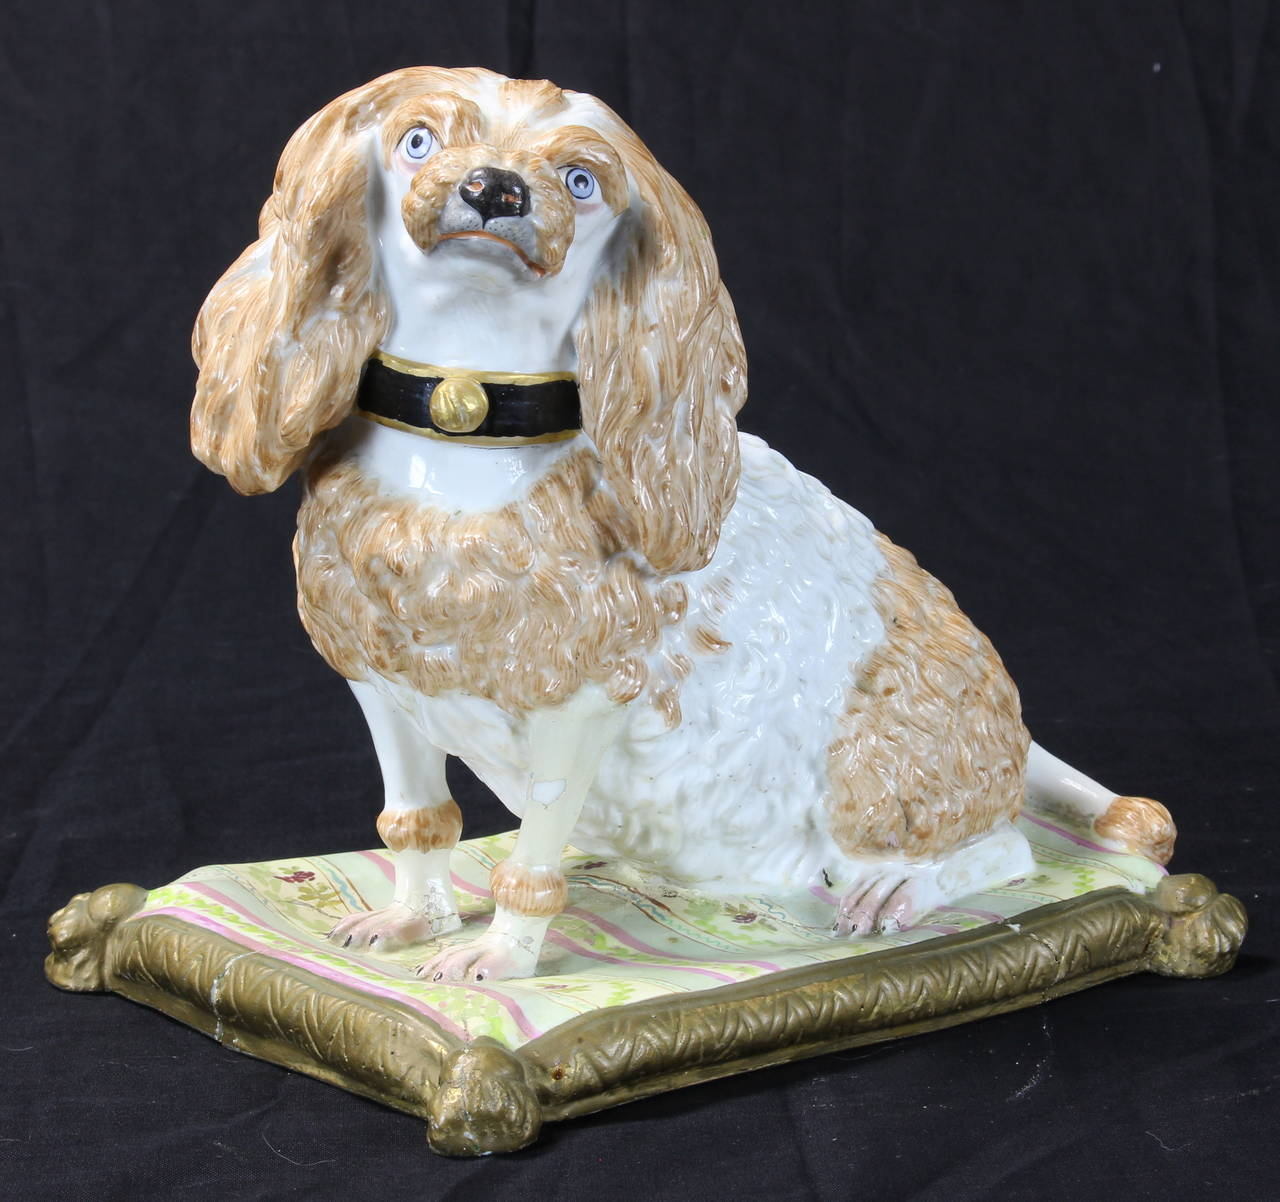 An early 19th century Meissen King Charles Spaniel resting on a colorful tasseled cushion. The base of the piece shows evidence of extensive damage and old, poorly done repairs.